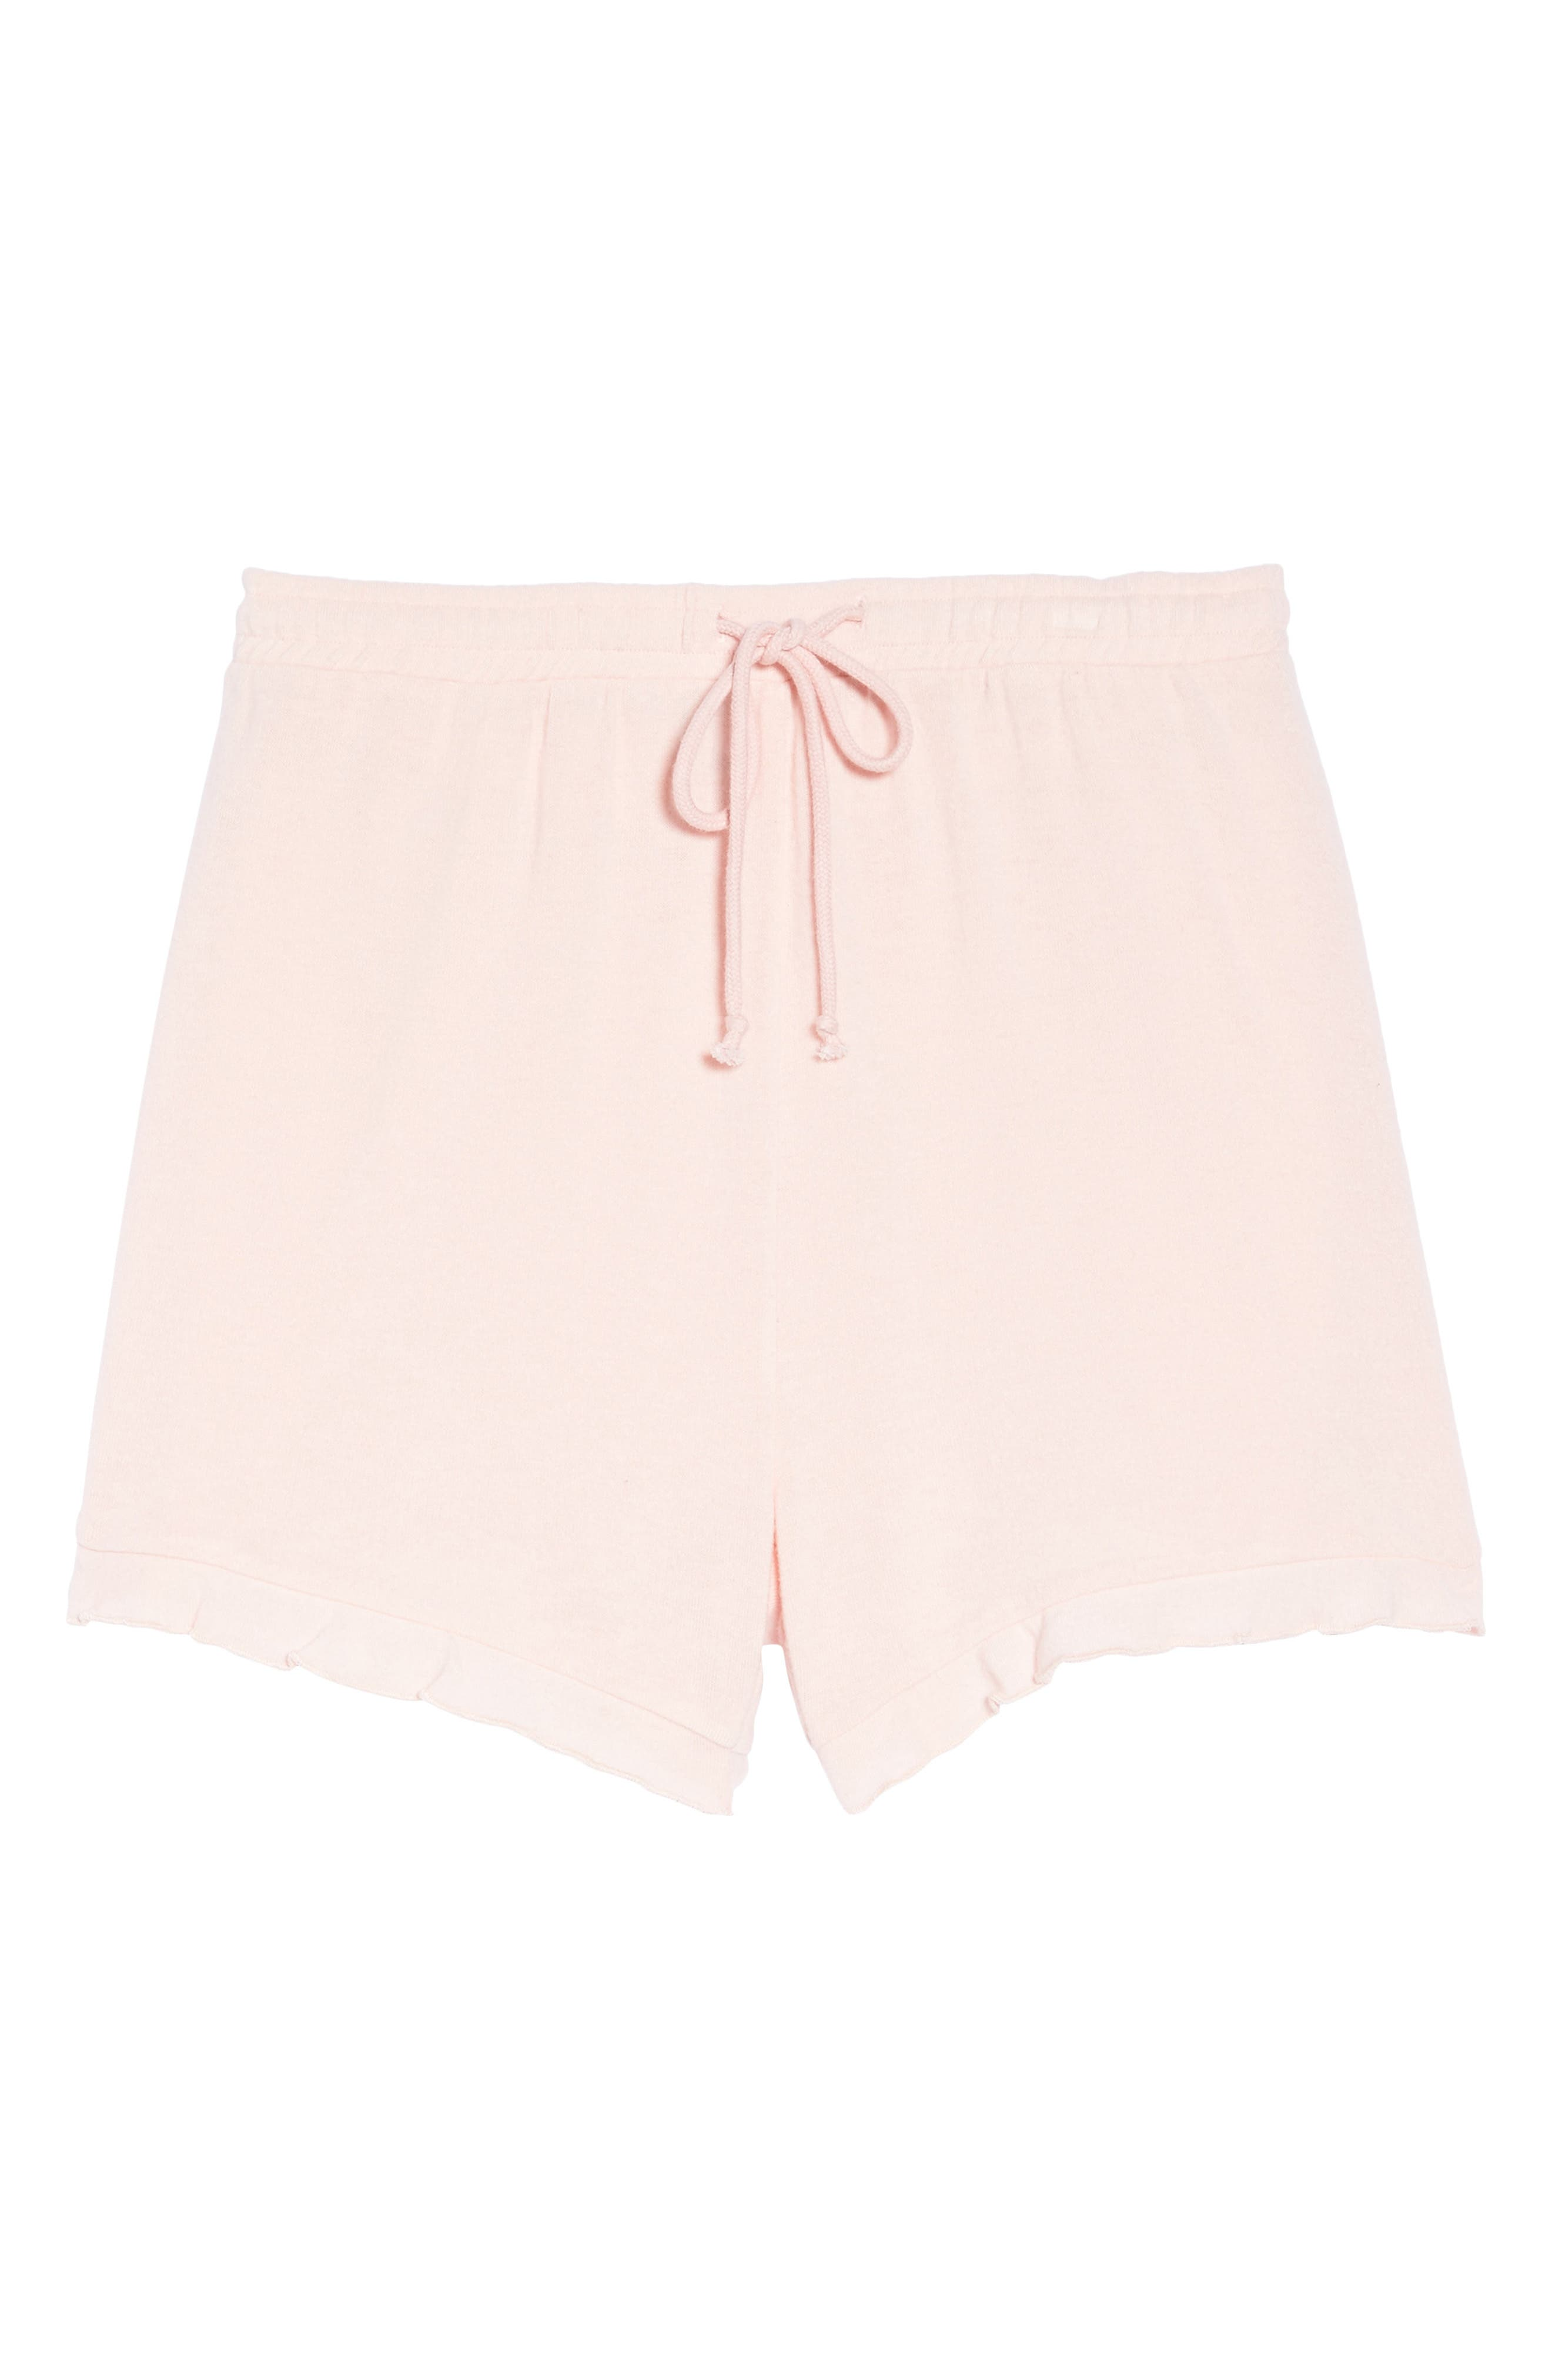 Ruffle Lounge Shorts,                             Alternate thumbnail 6, color,